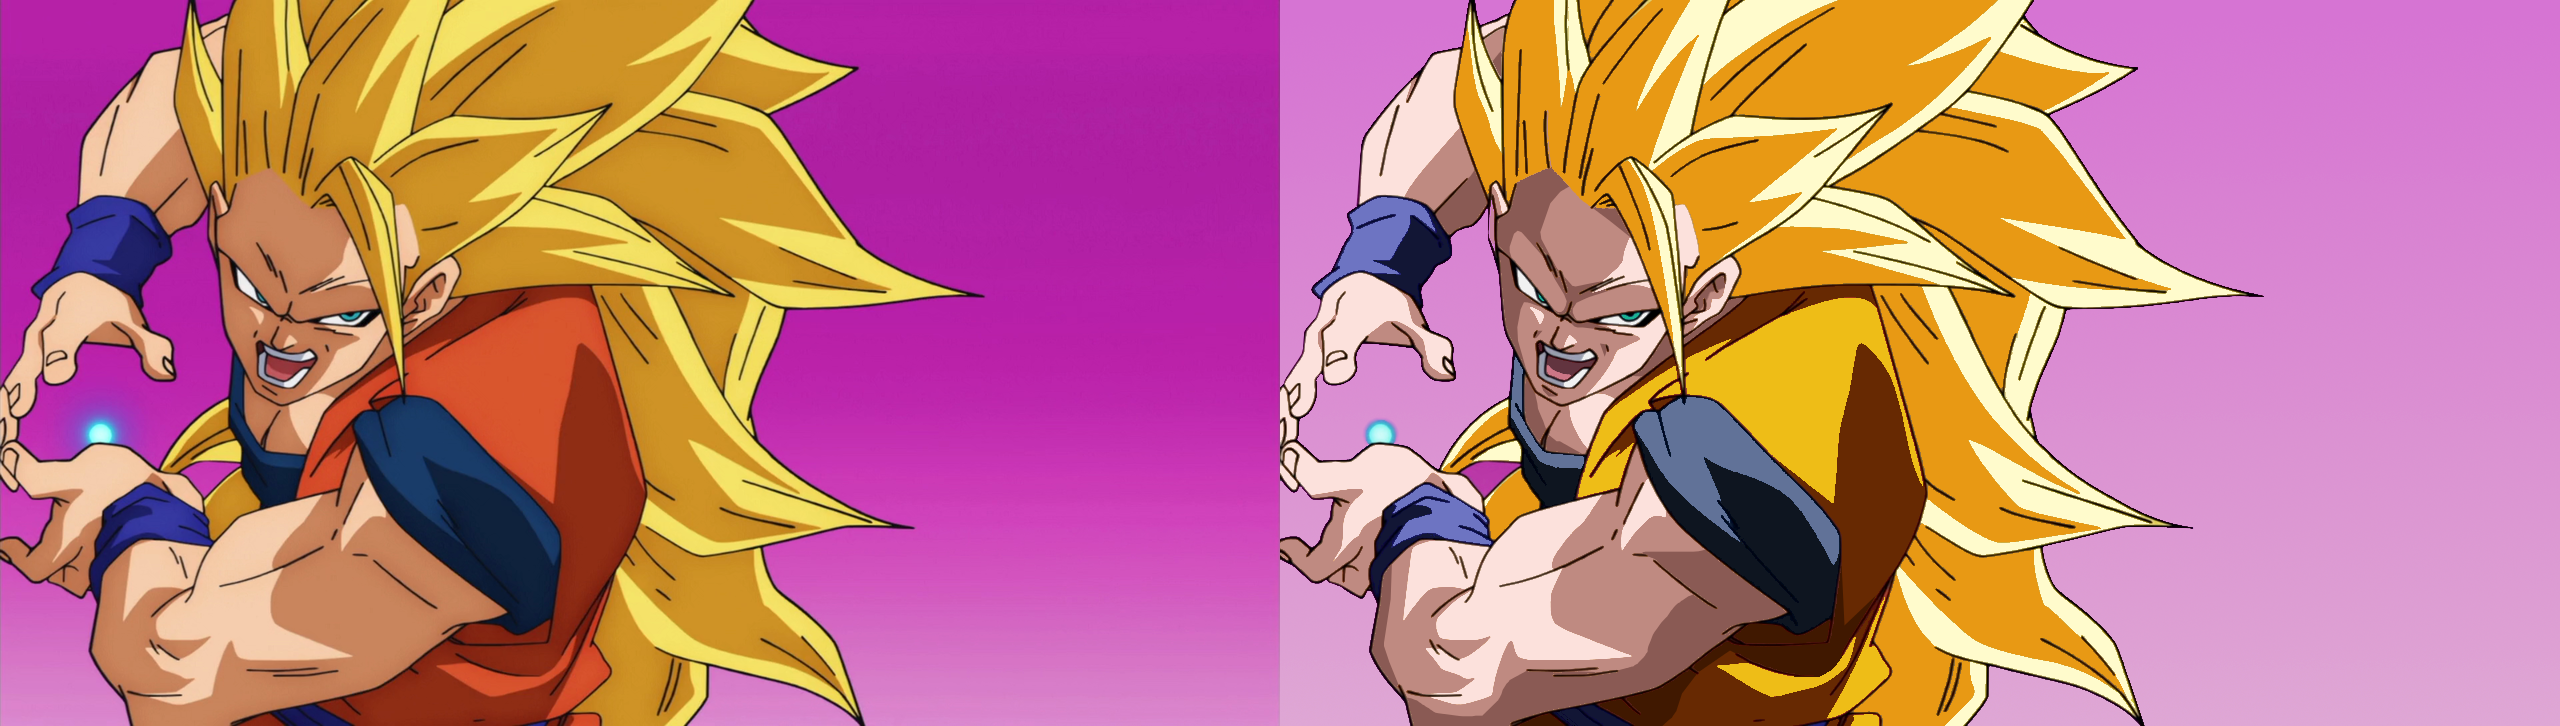 Goku SSJ3 from Dragon Ball Super Episode #5 by JumpColors on ...